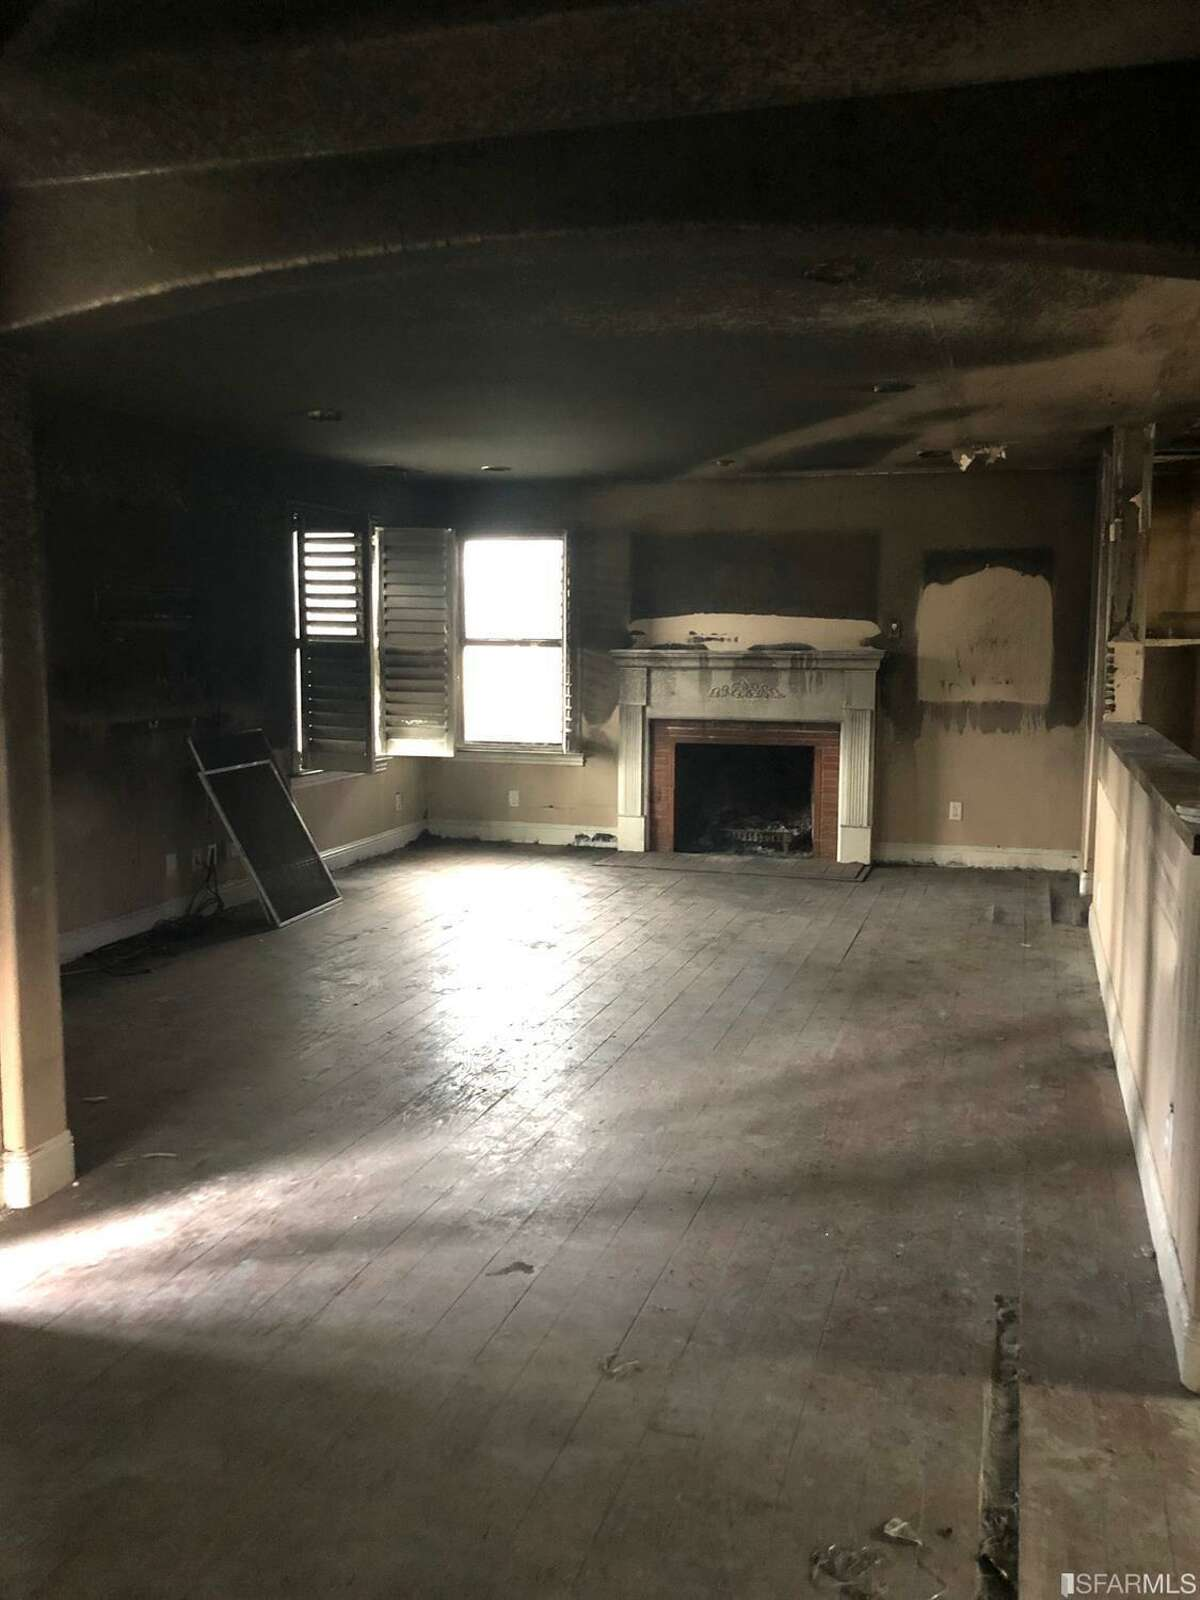 A fixer-upper at 1180 Alameda in San Carlos suffered an accidental kitchen fire and is on the market for $1.6 million.